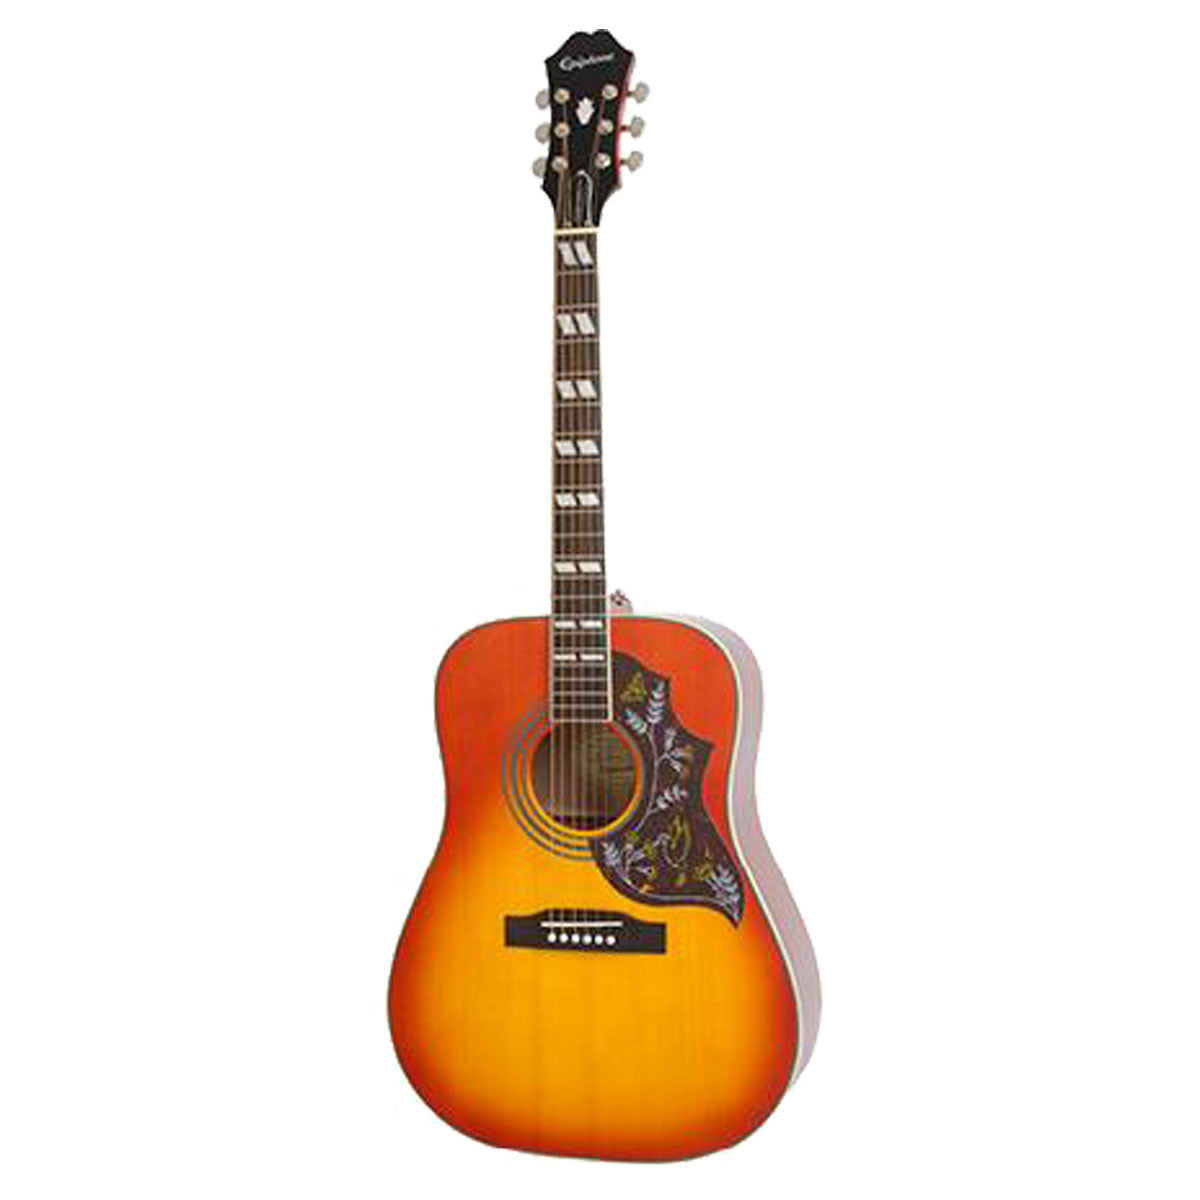 Epiphone Hummingbird Pro Acoustic Guitar Faded Cherry w/ Pickup - EEHBFCNH1